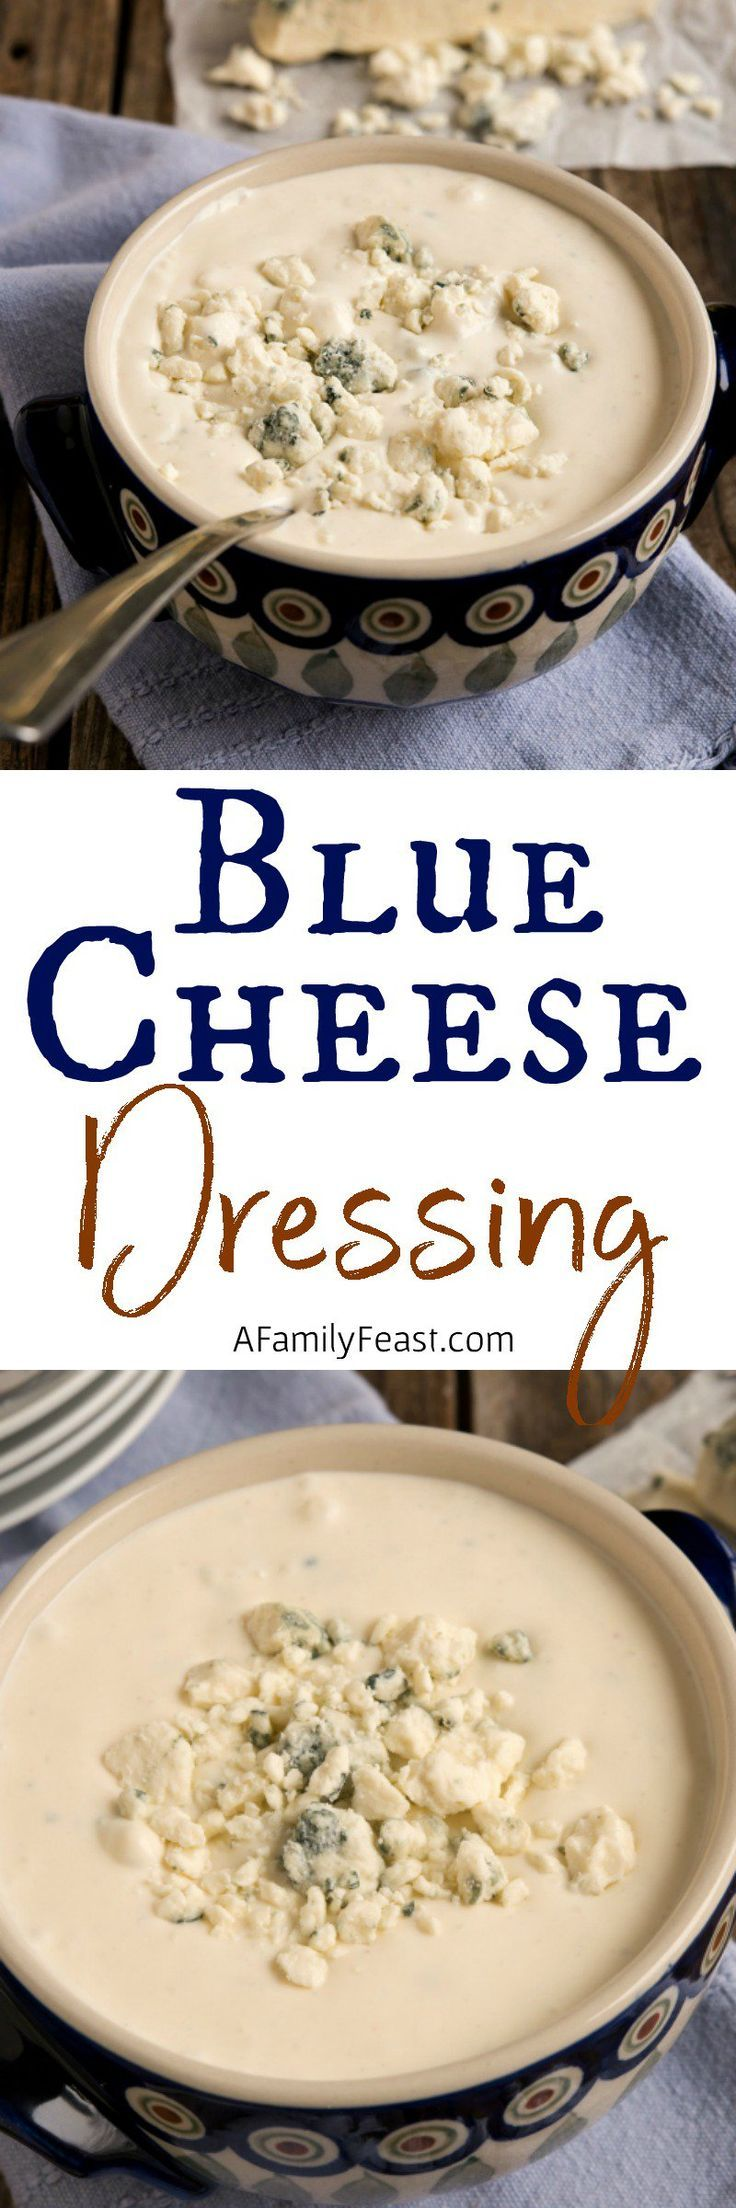 Homemade Blue Cheese Dressing - A really delicious Blue Cheese salad dressing you can make at home! Perfect for salads, with buffalo wings or as a dip.